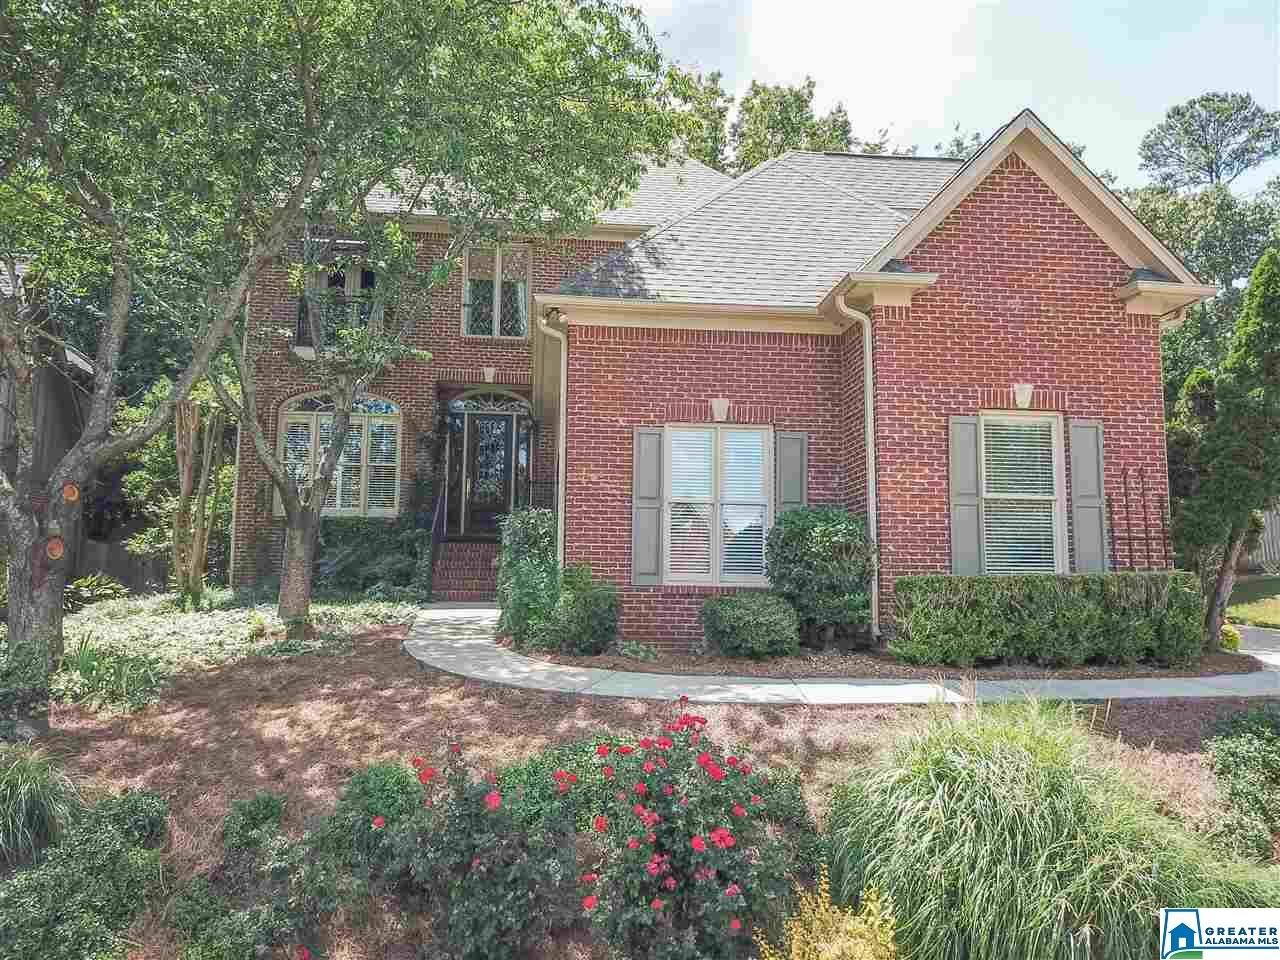 1176 HIBISCUS DR, Hoover, AL 35226 - #: 886403